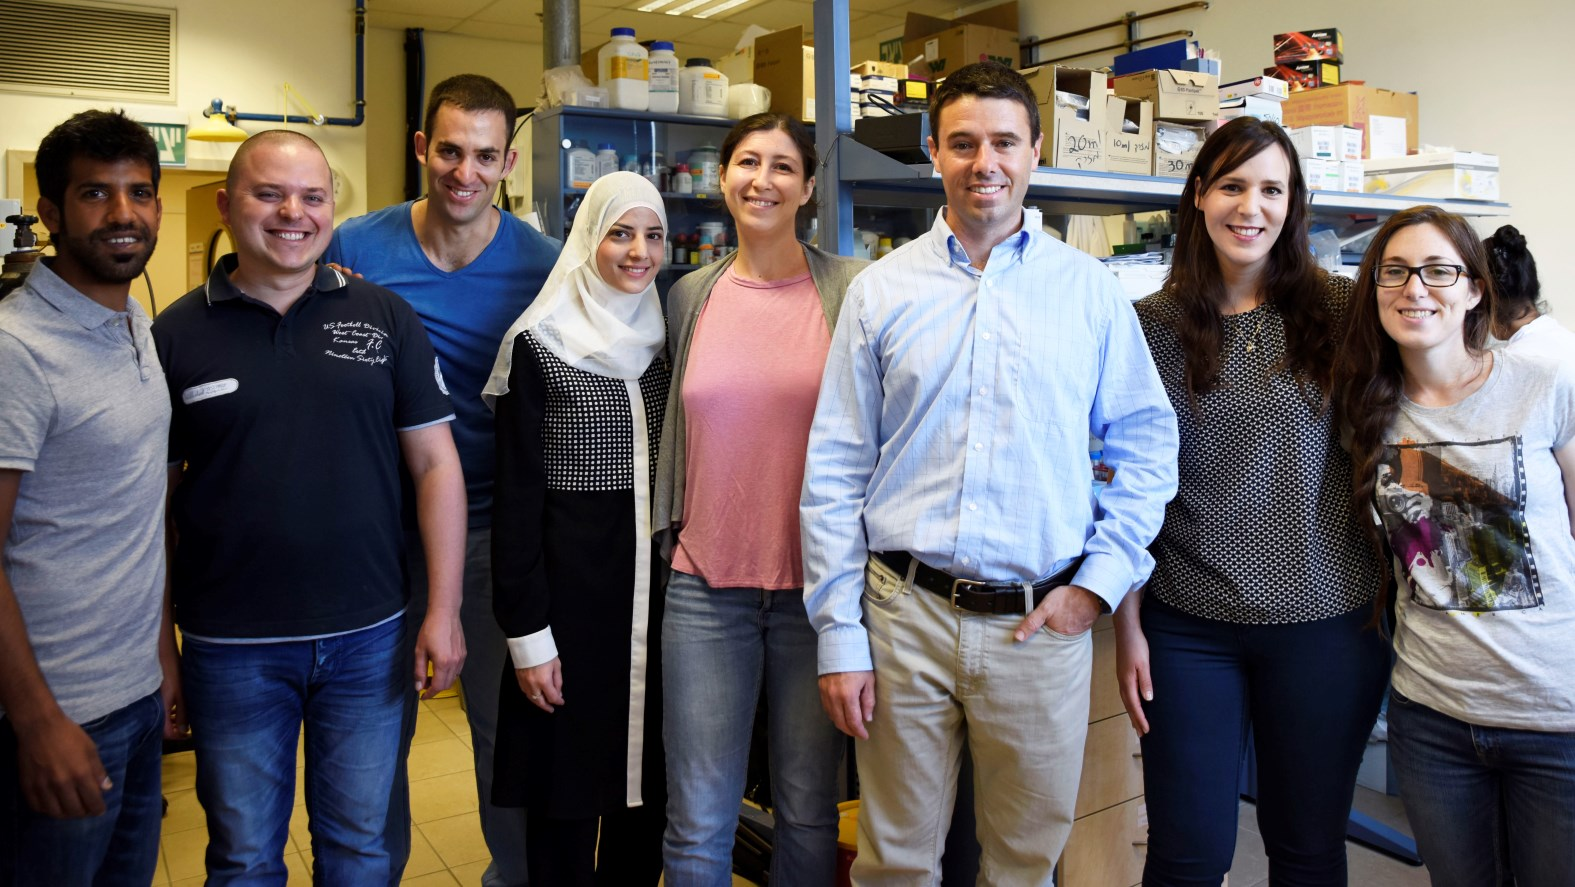 Assistant Prof. Avi Schroeder, third from the right, and doctoral student Zvi Yaari, second from left, with the Technion research team. Photo credit: Omry Dinner